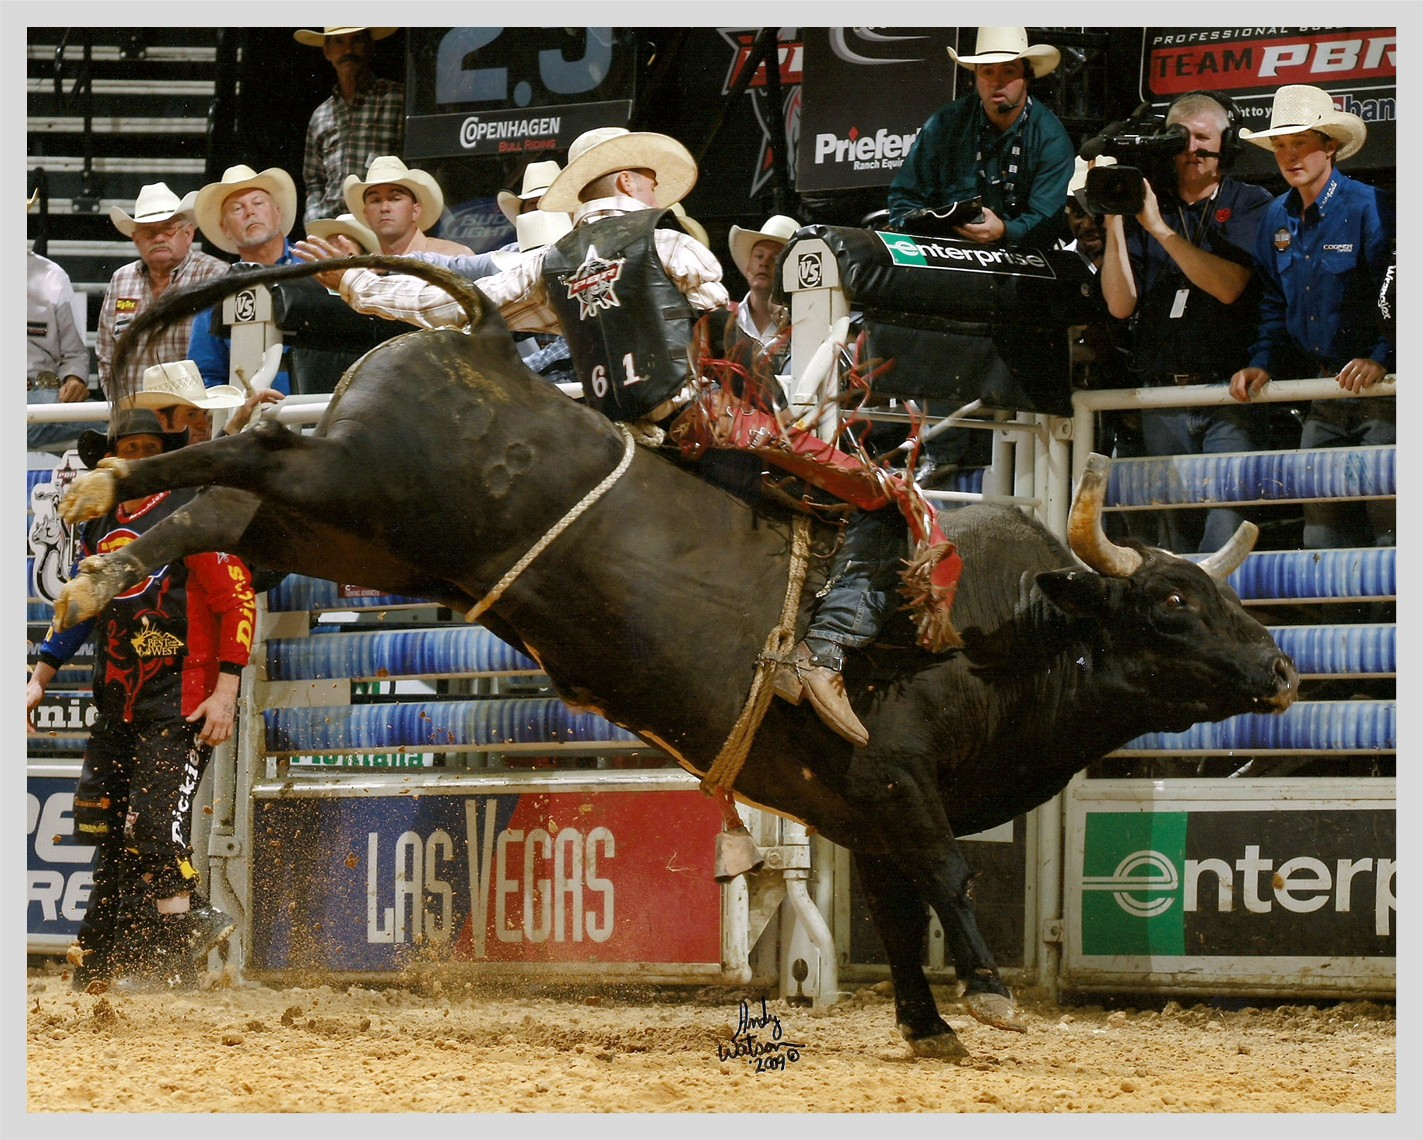 Rodeo Bucking Bulls http://www.scalcobuckingbulls.com/